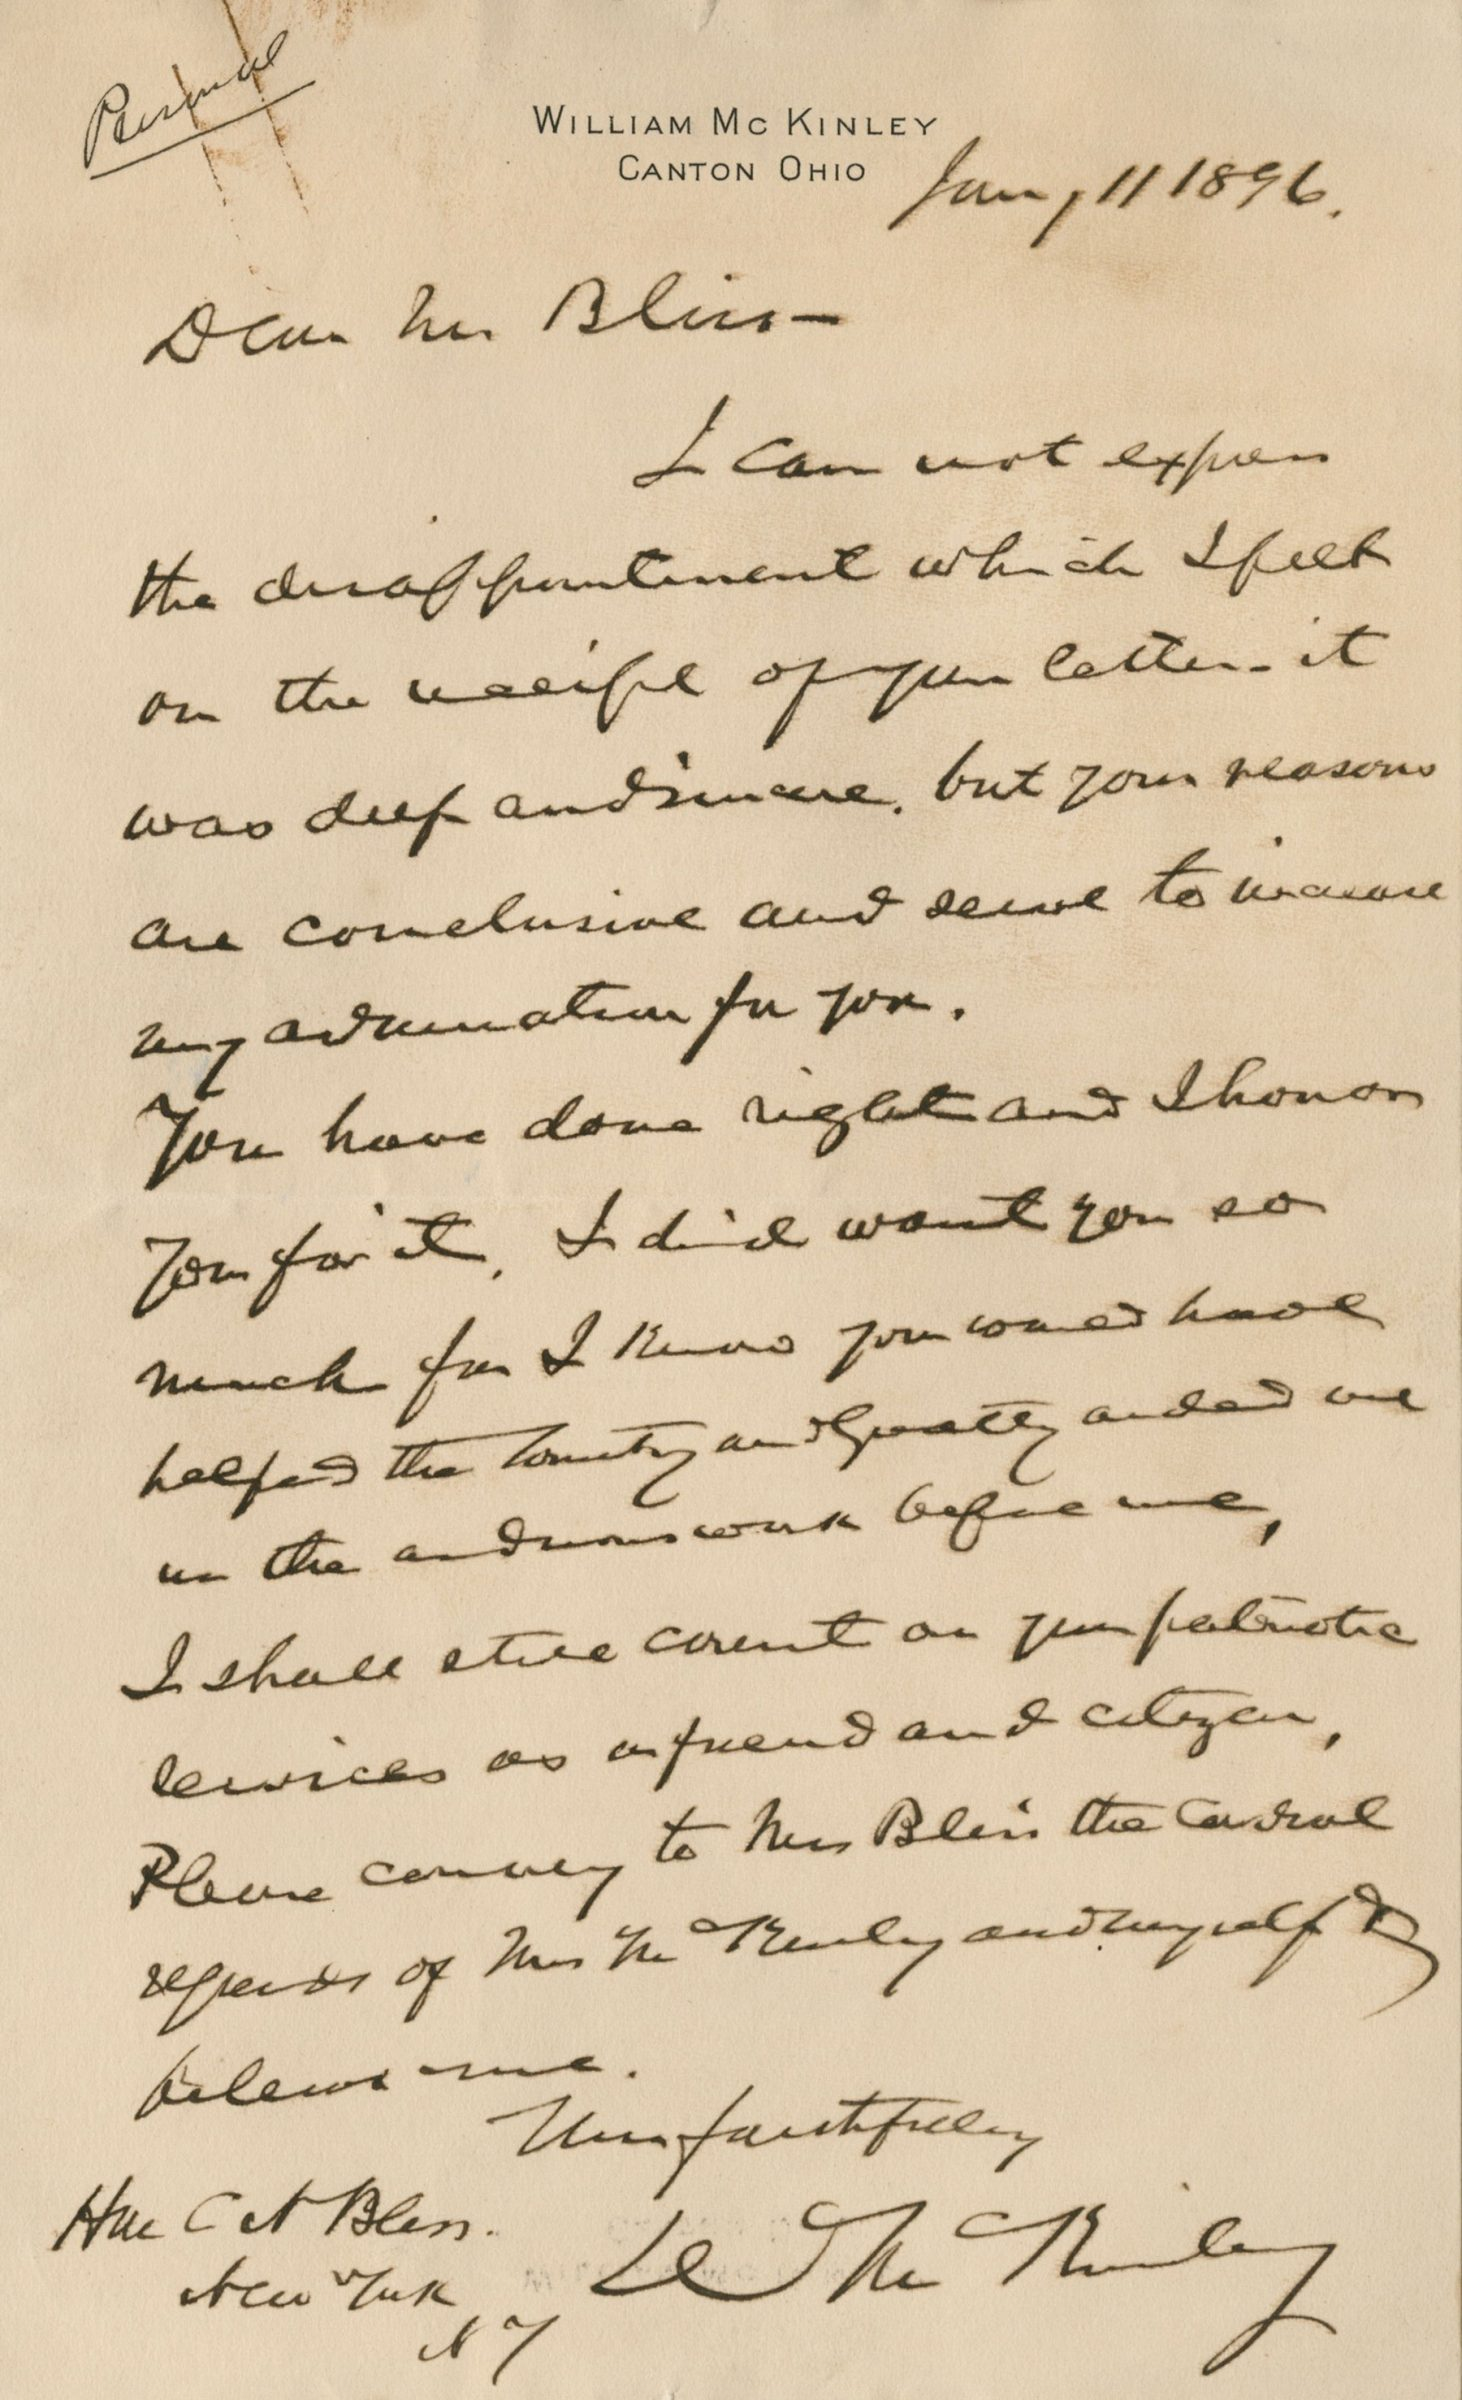 """Authentic Letter from William McKinley, Soon to Be President, Movingly Speaks of """"the arduous work before me"""""""